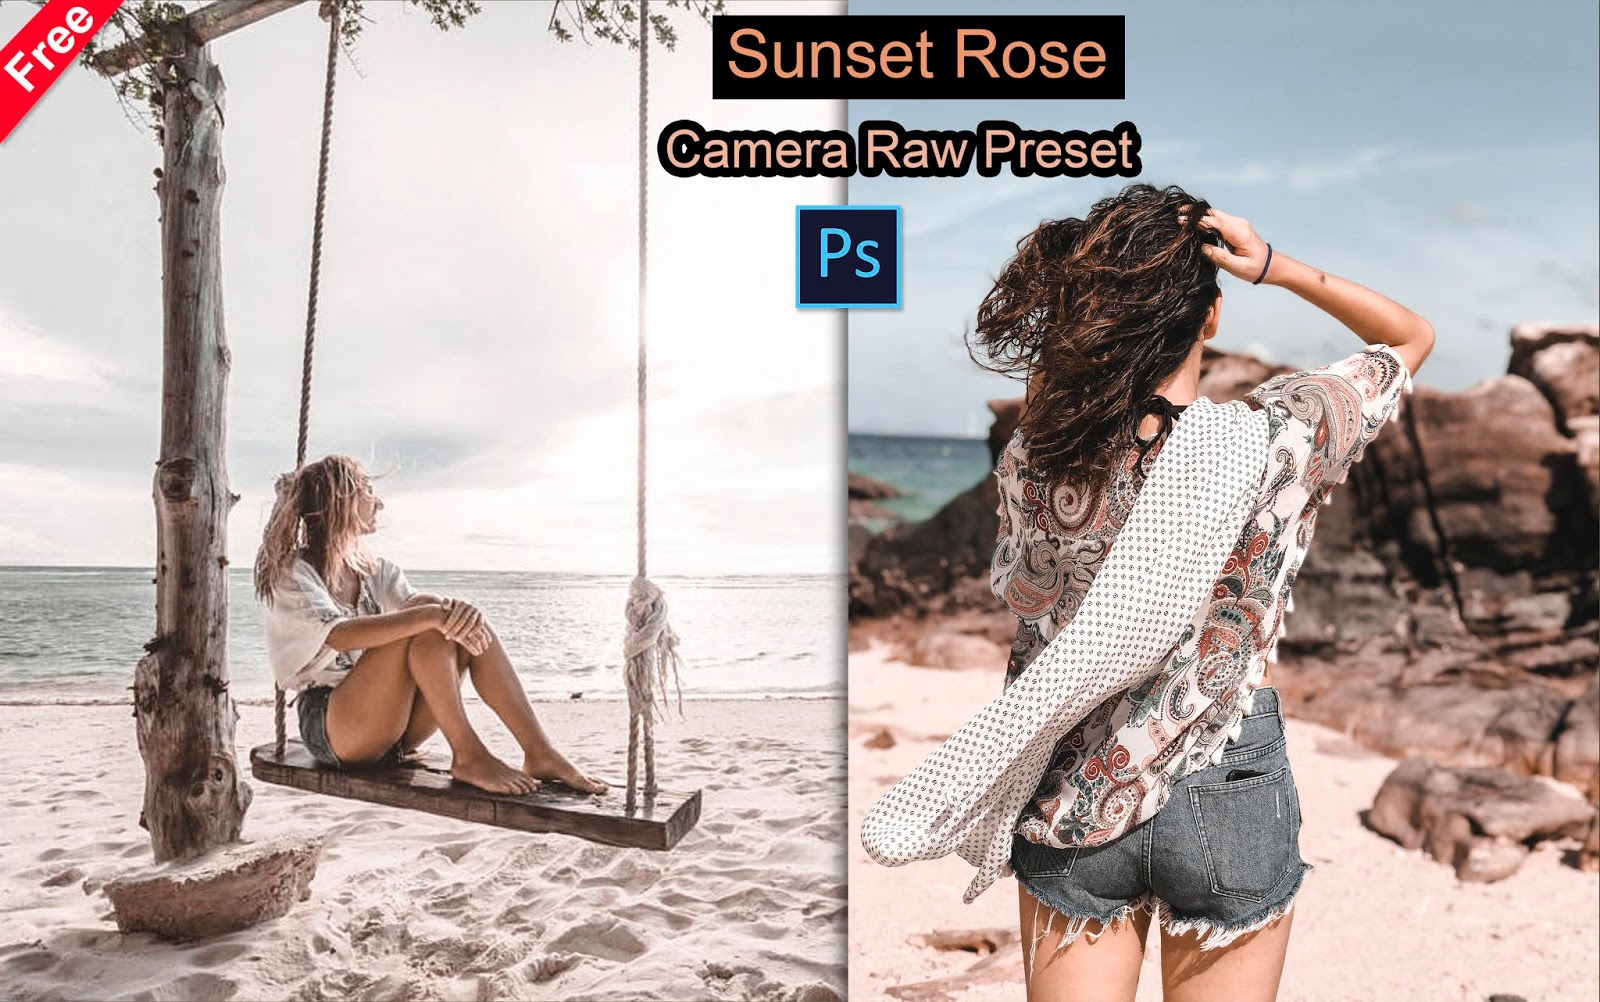 Download Sunset Rose Camera Raw Preset for Free | How to Edit Your Photos with Sunset Rose Effect in Photoshop